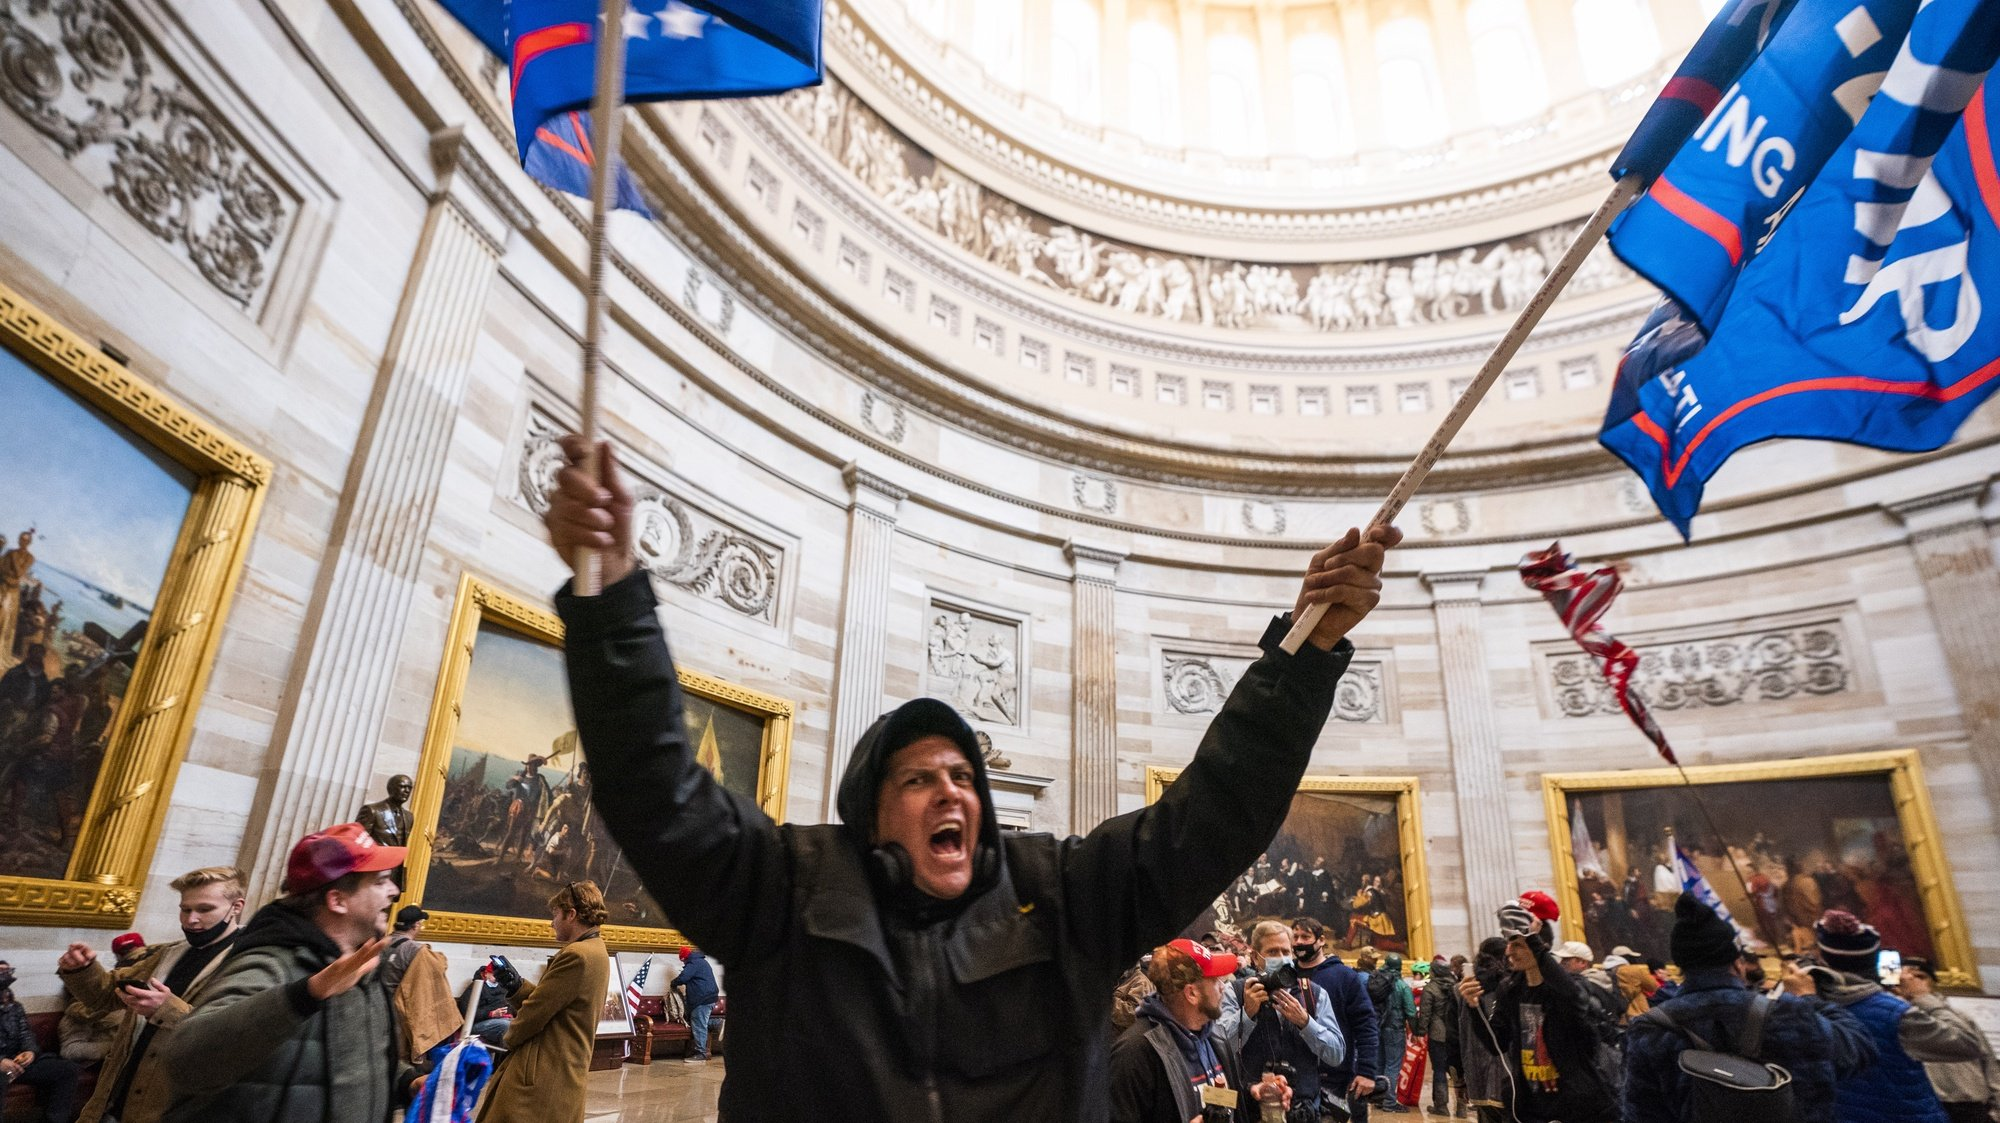 epaselect epa08923451 Supporters of US President Donald J. Trump in the Capitol Rotunda after breaching Capitol security in Washington, DC, USA, 06 January 2021. Protesters entered the US Capitol where the Electoral College vote certification for President-elect Joe Biden took place.  EPA/JIM LO SCALZO